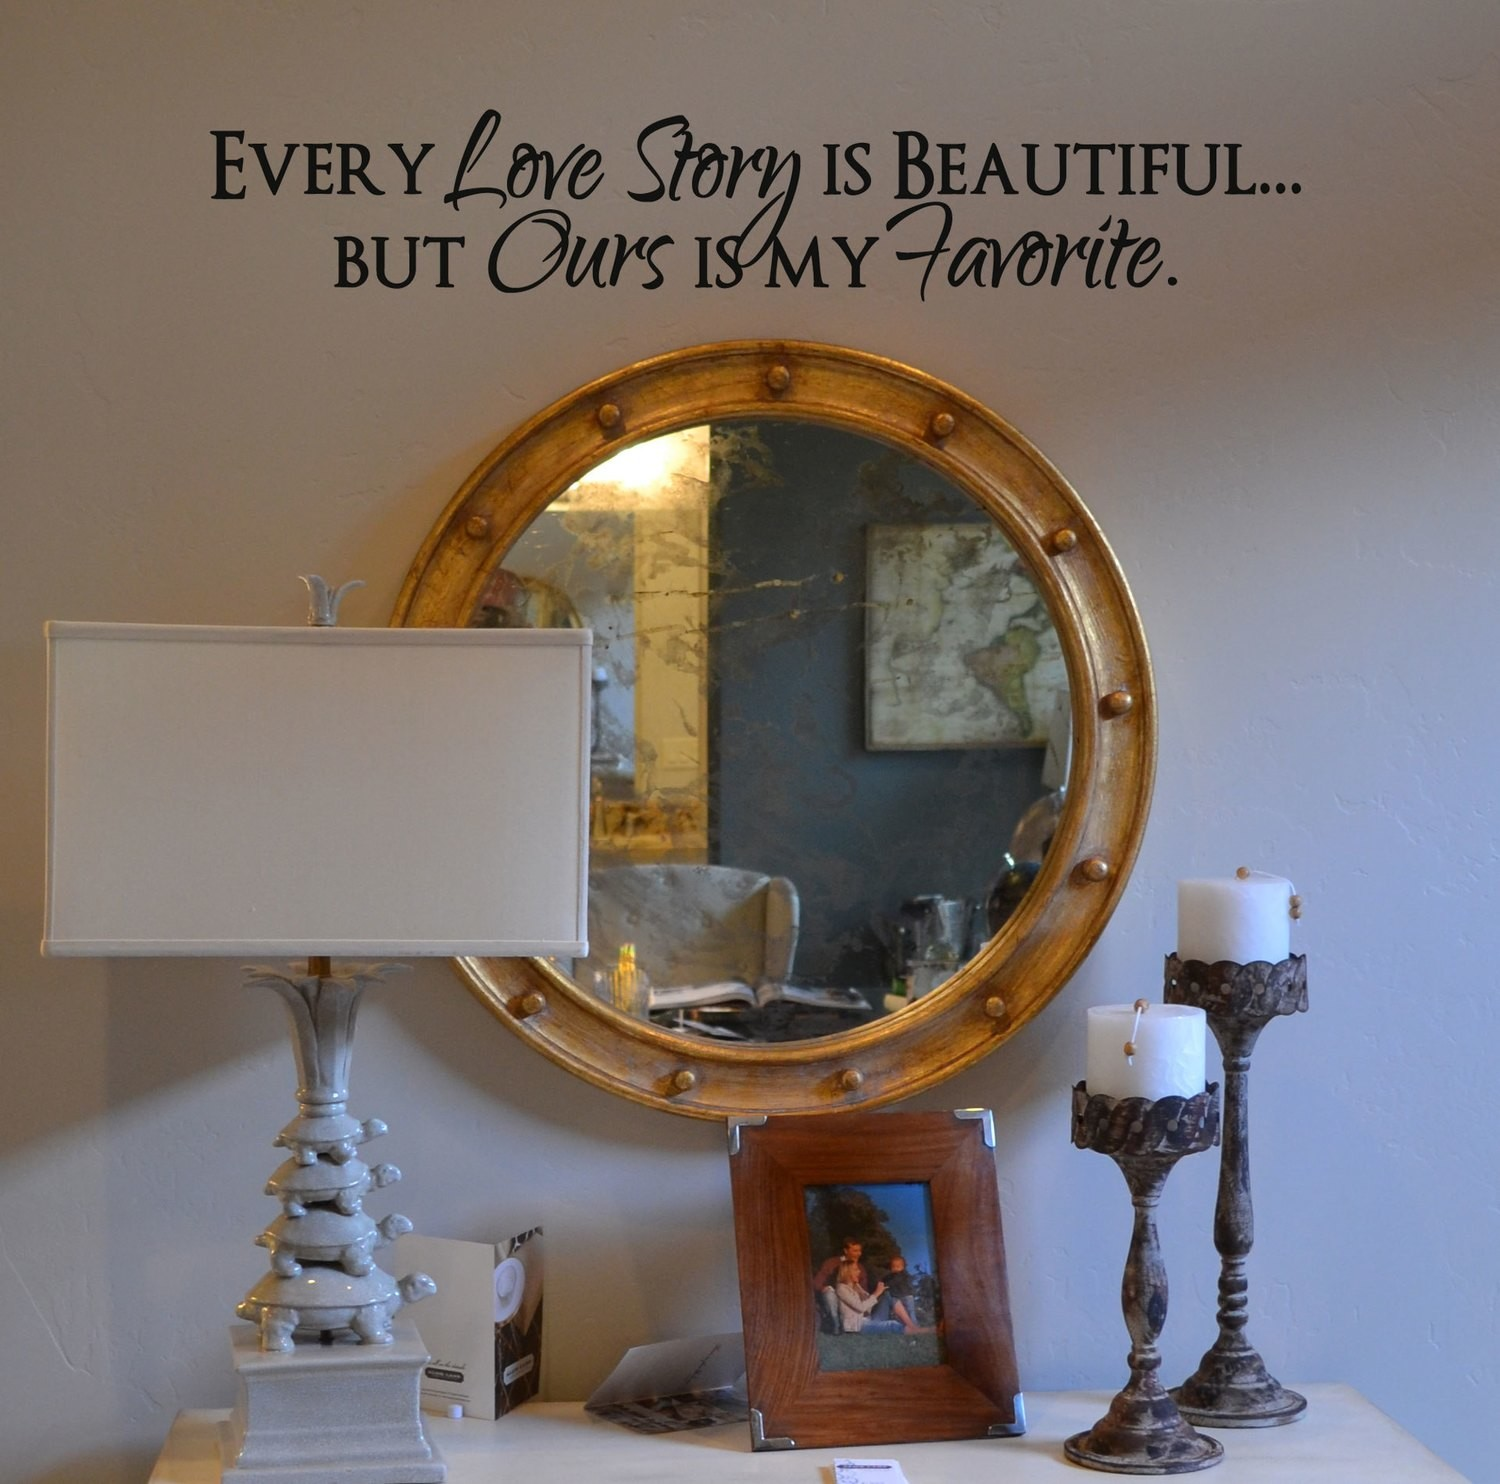 Every love story is beautiful wall decal KW217